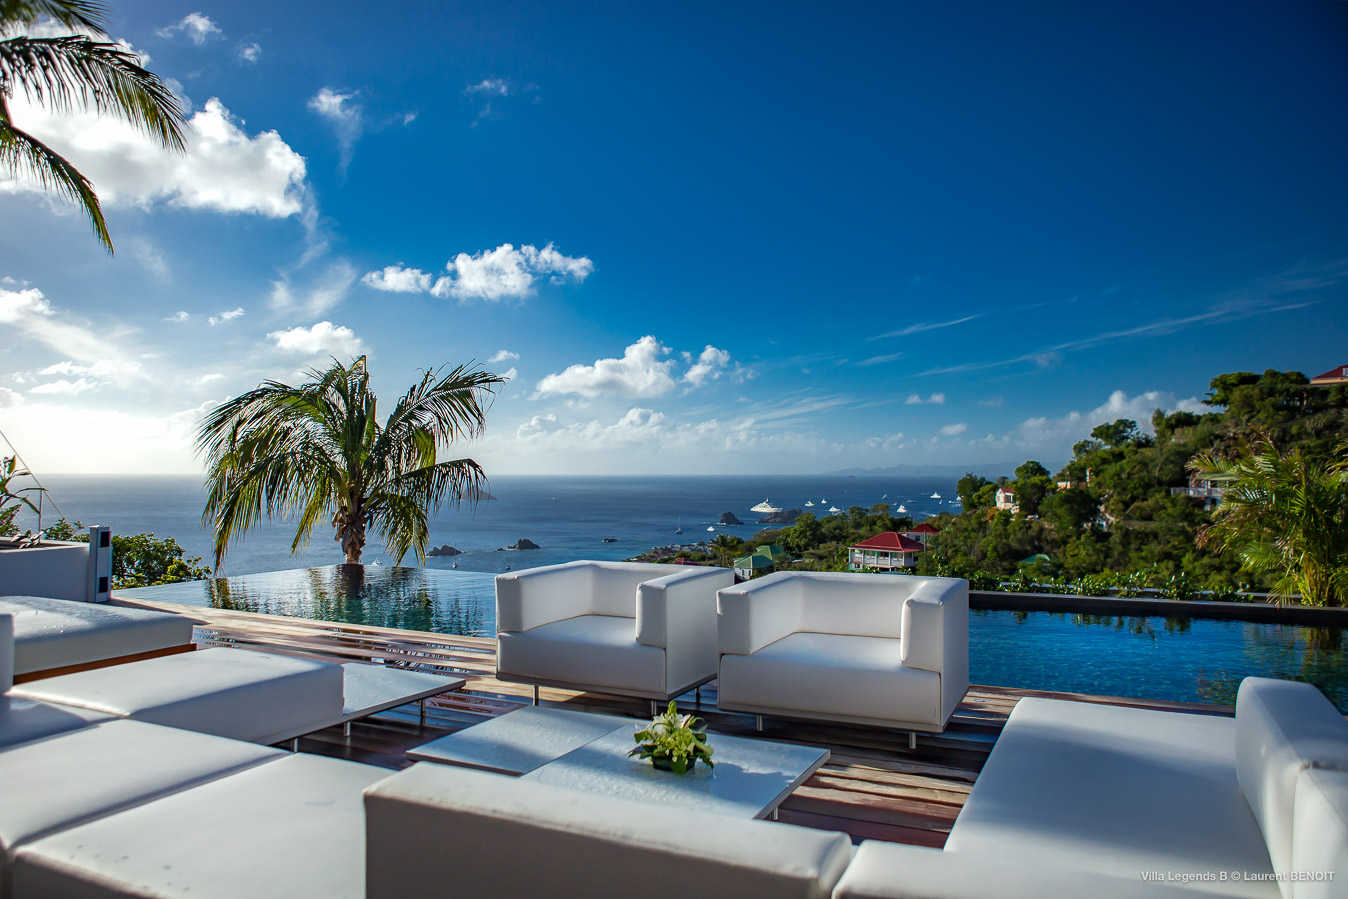 Villa Legend B - Contemporary Villa for Rent with Full Air Conditioning St Barth Lutin - Terrace